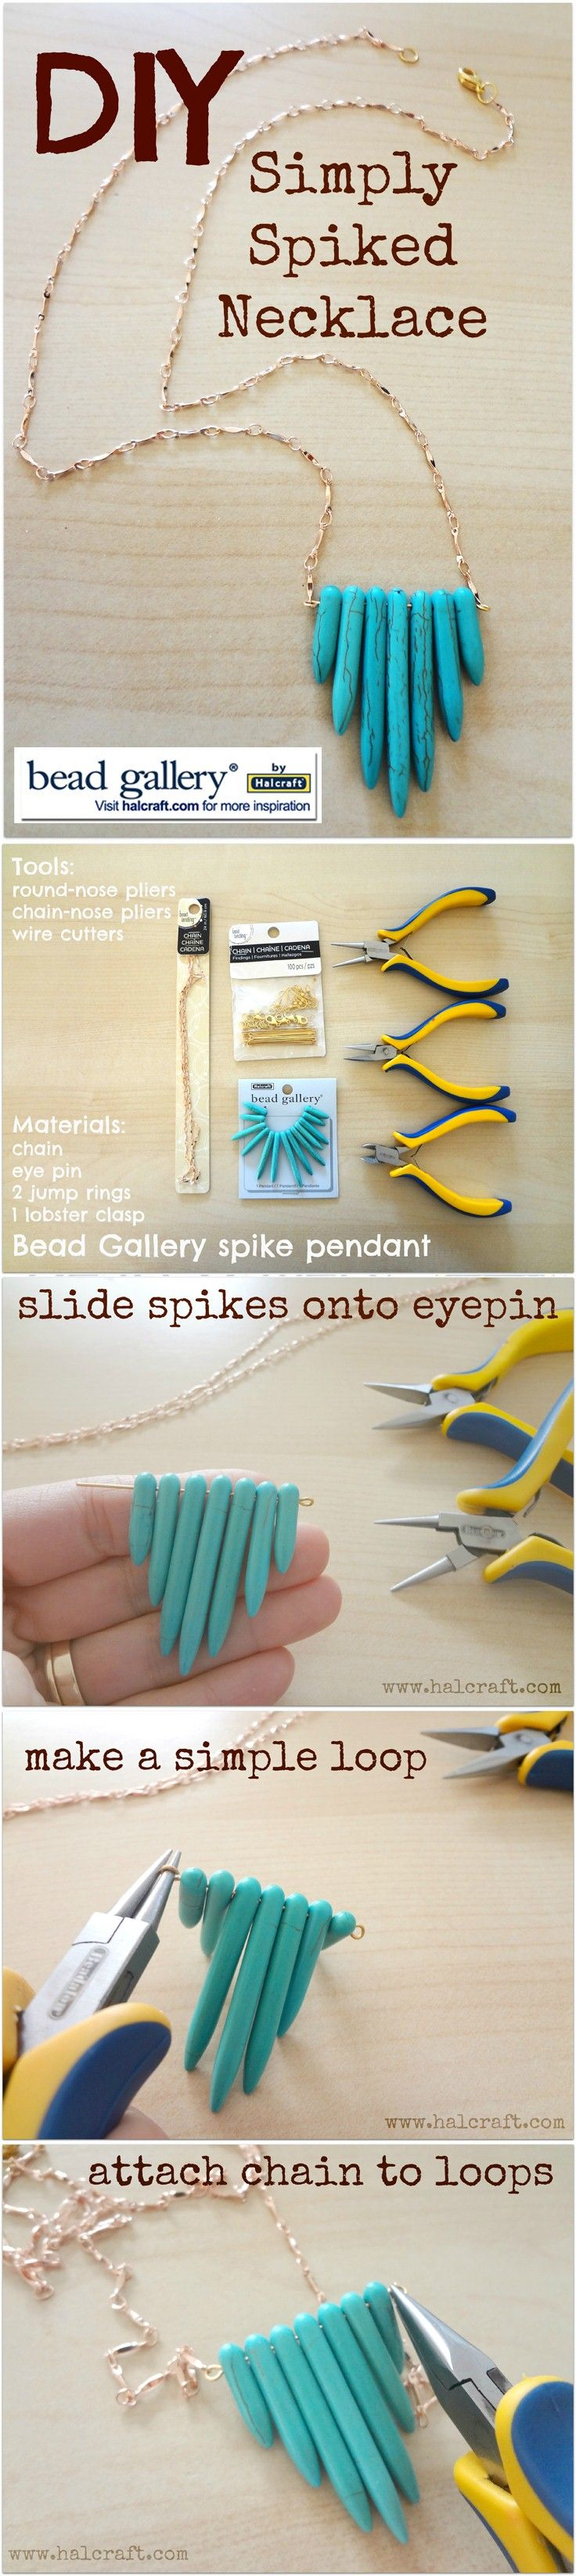 DIY Spiked Turquoise and Chain Pendant Necklace